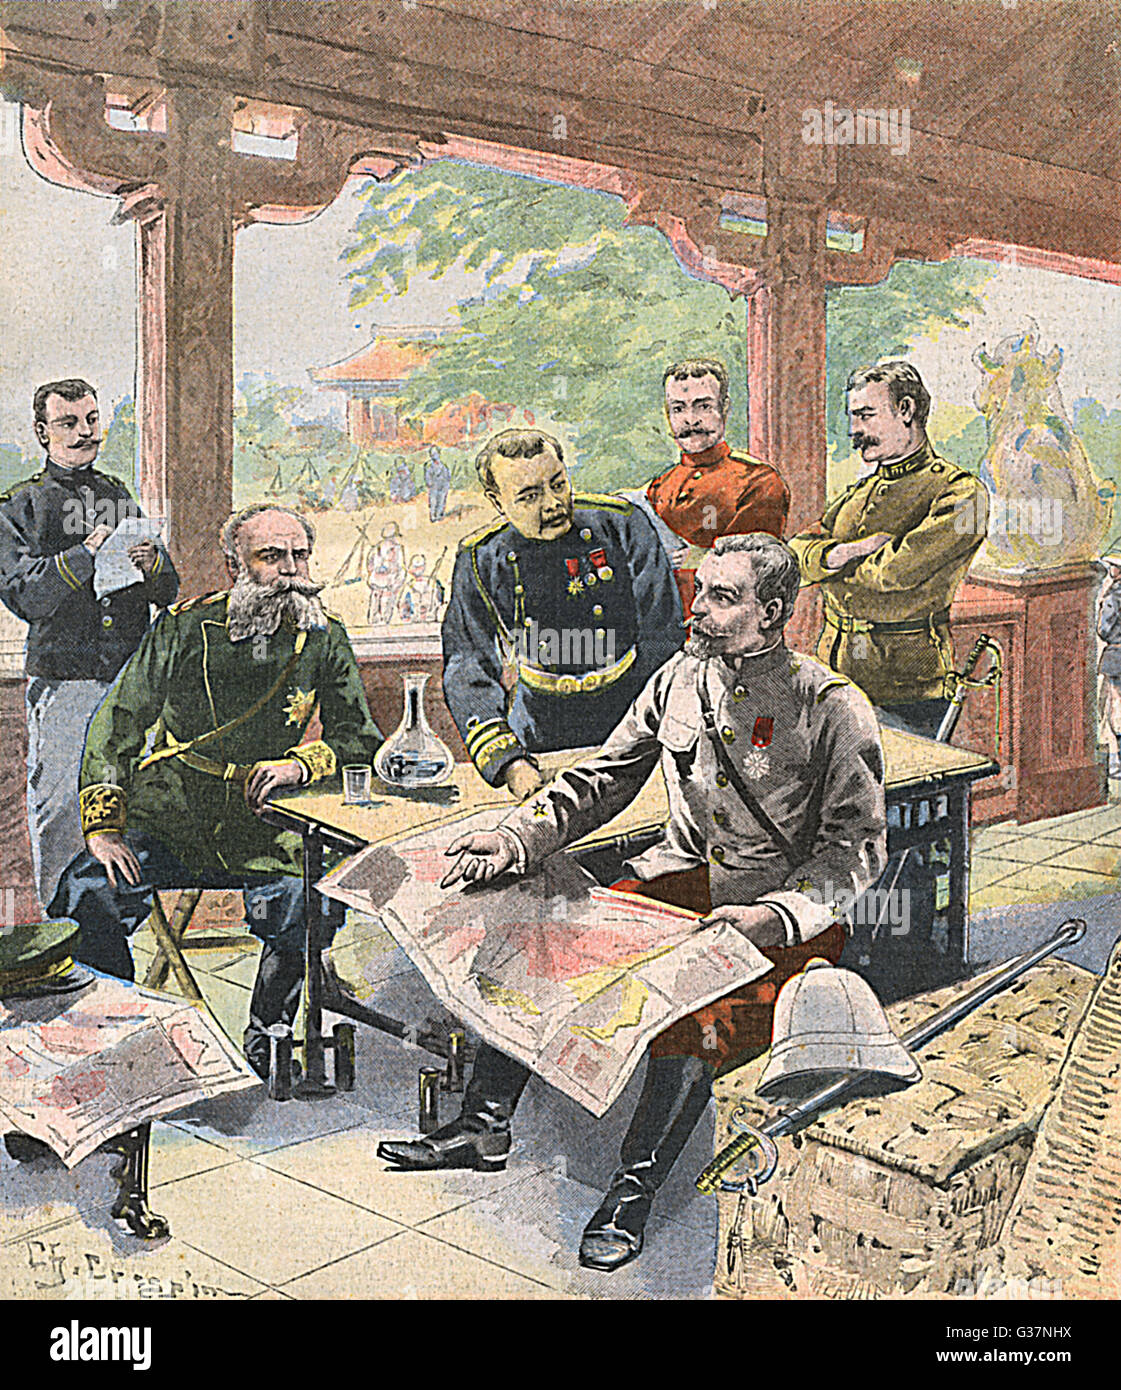 BOXER REBELLION A council-of-war at Peking  between the leaders of the  Allied forces        Date: September 1900 - Stock Image